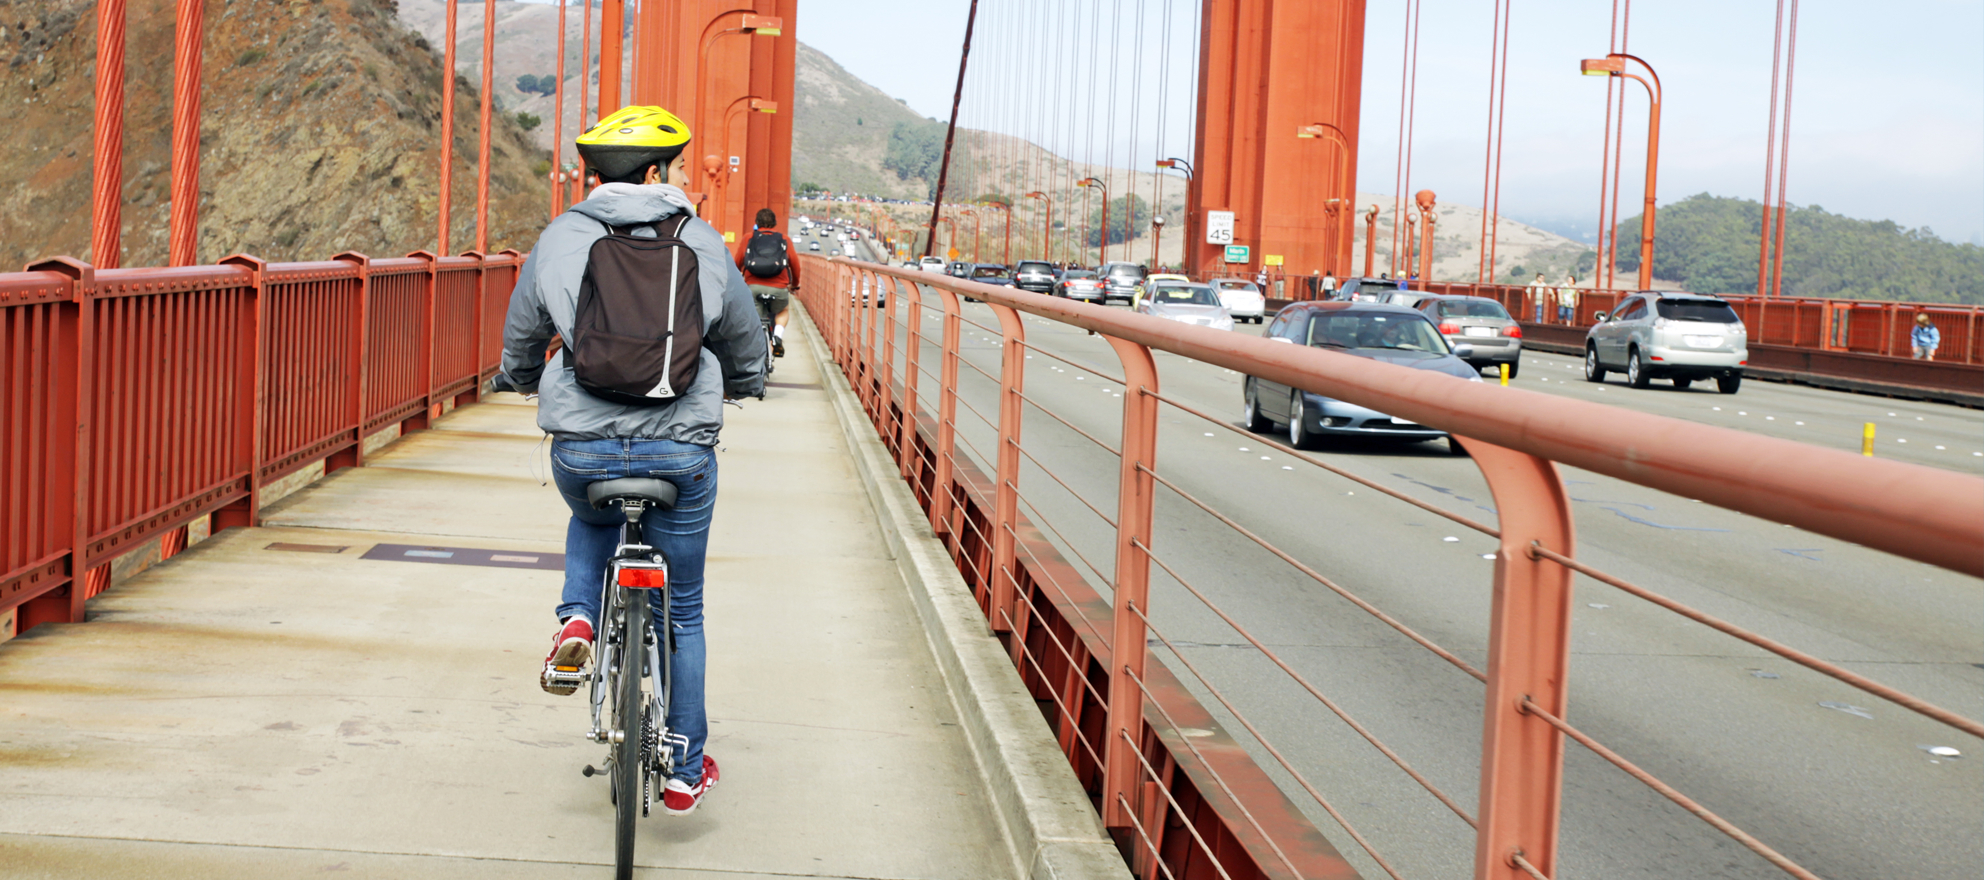 Walk Score finds San Francisco everything a pedestrian could ask for